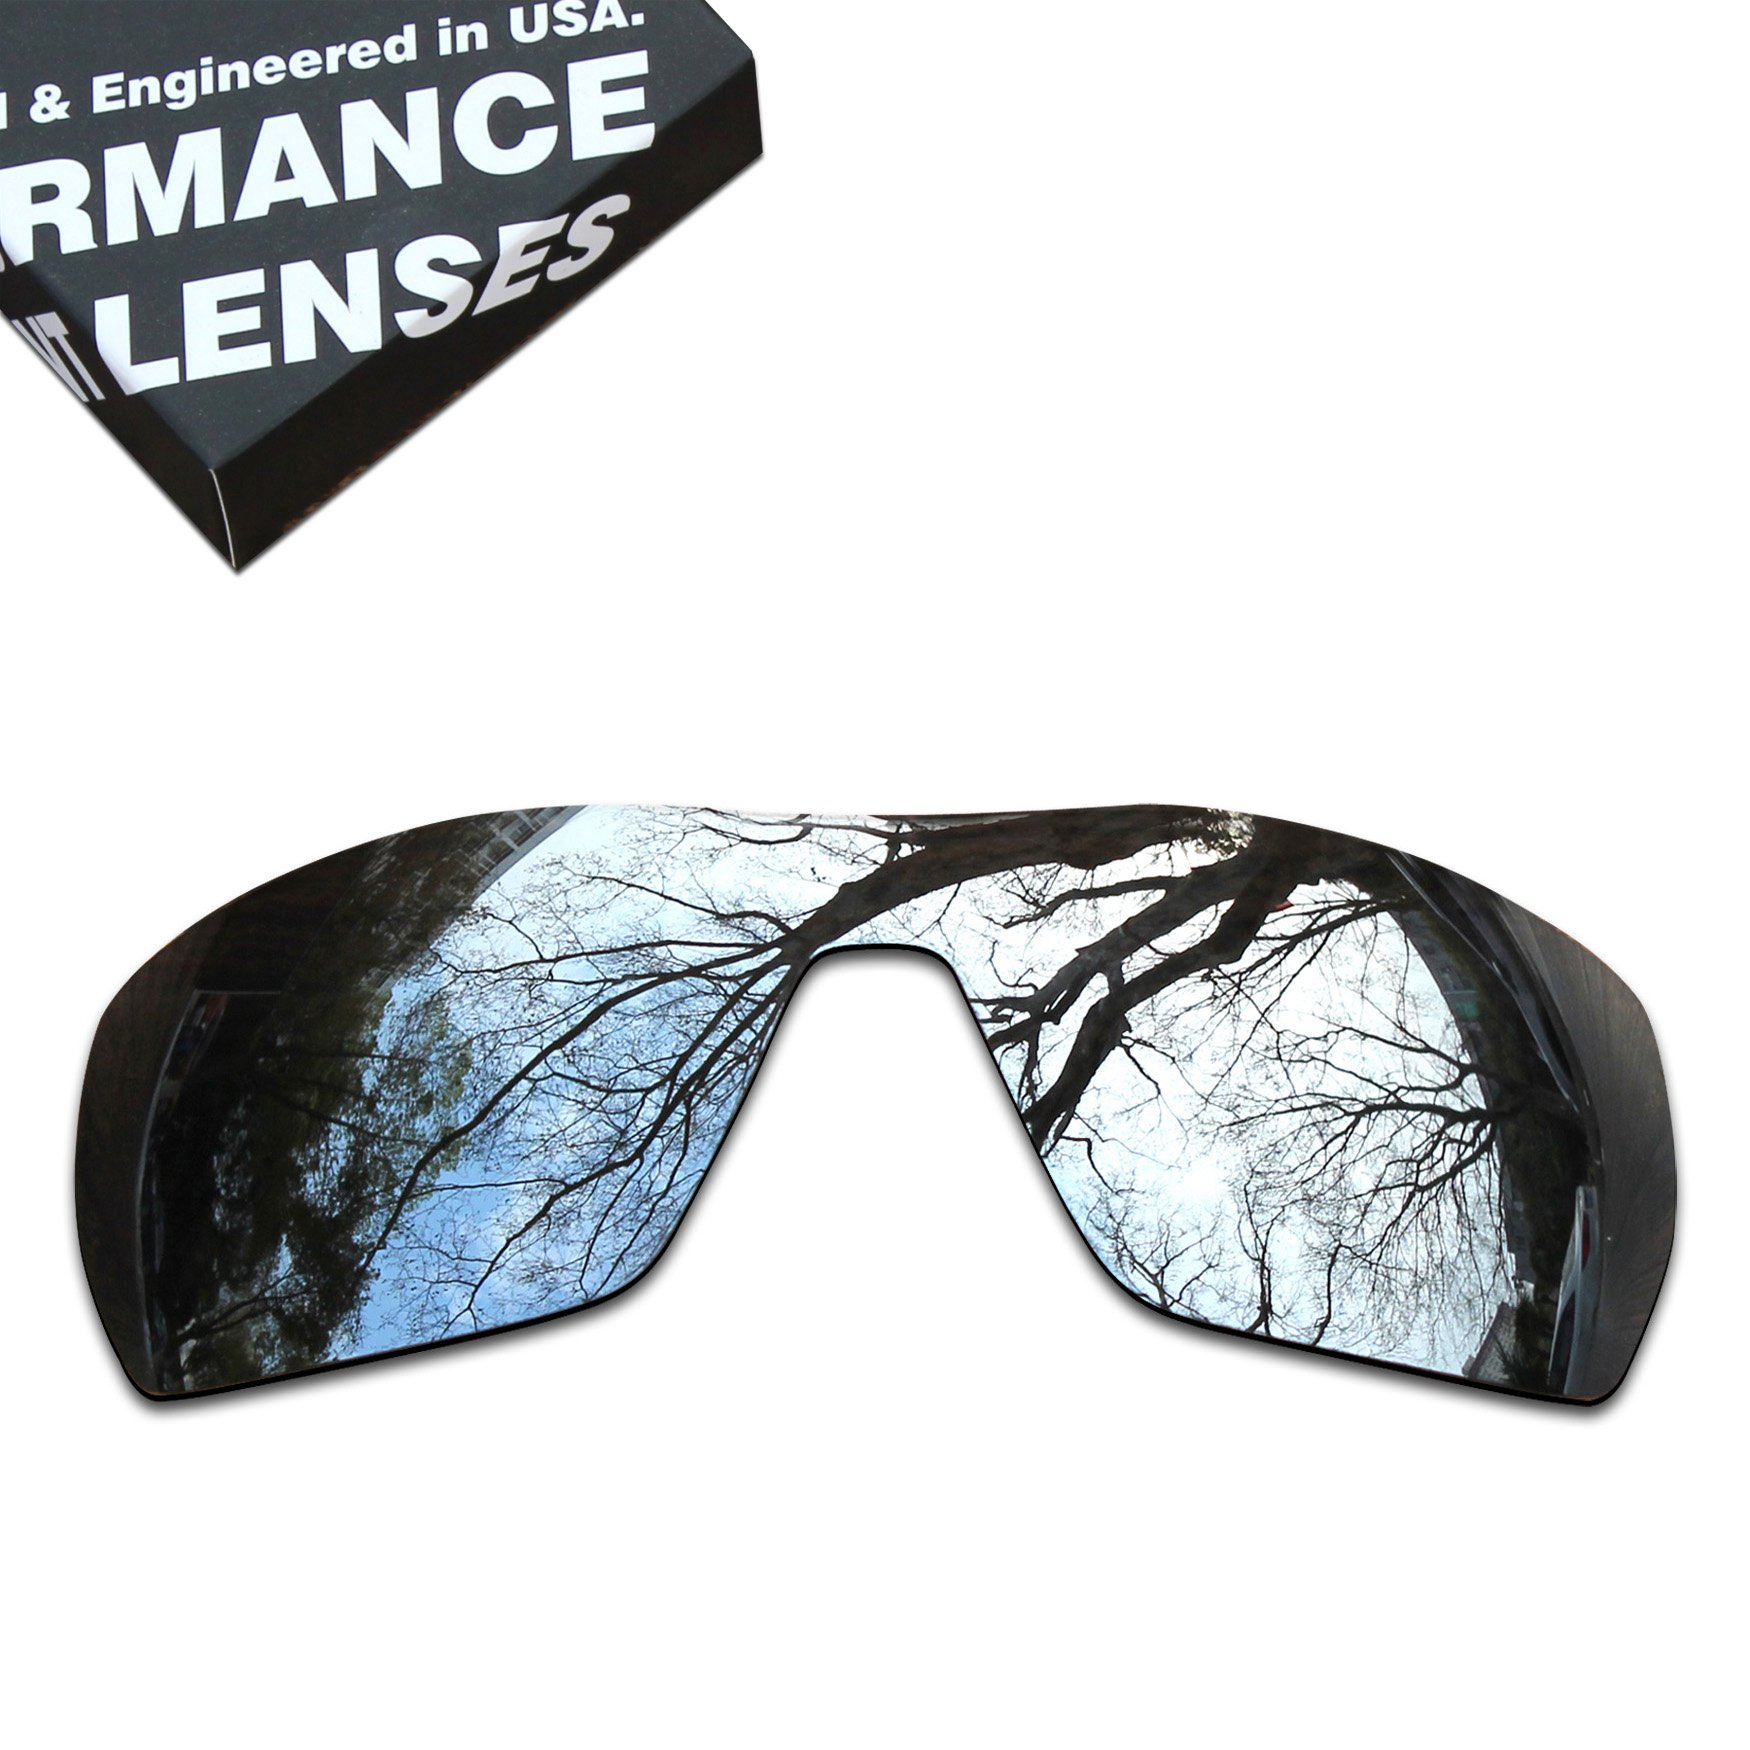 ToughAsNails Polarized Lens Replacement for Oakley Offshoot Sunglass - More Options by ToughAsNails